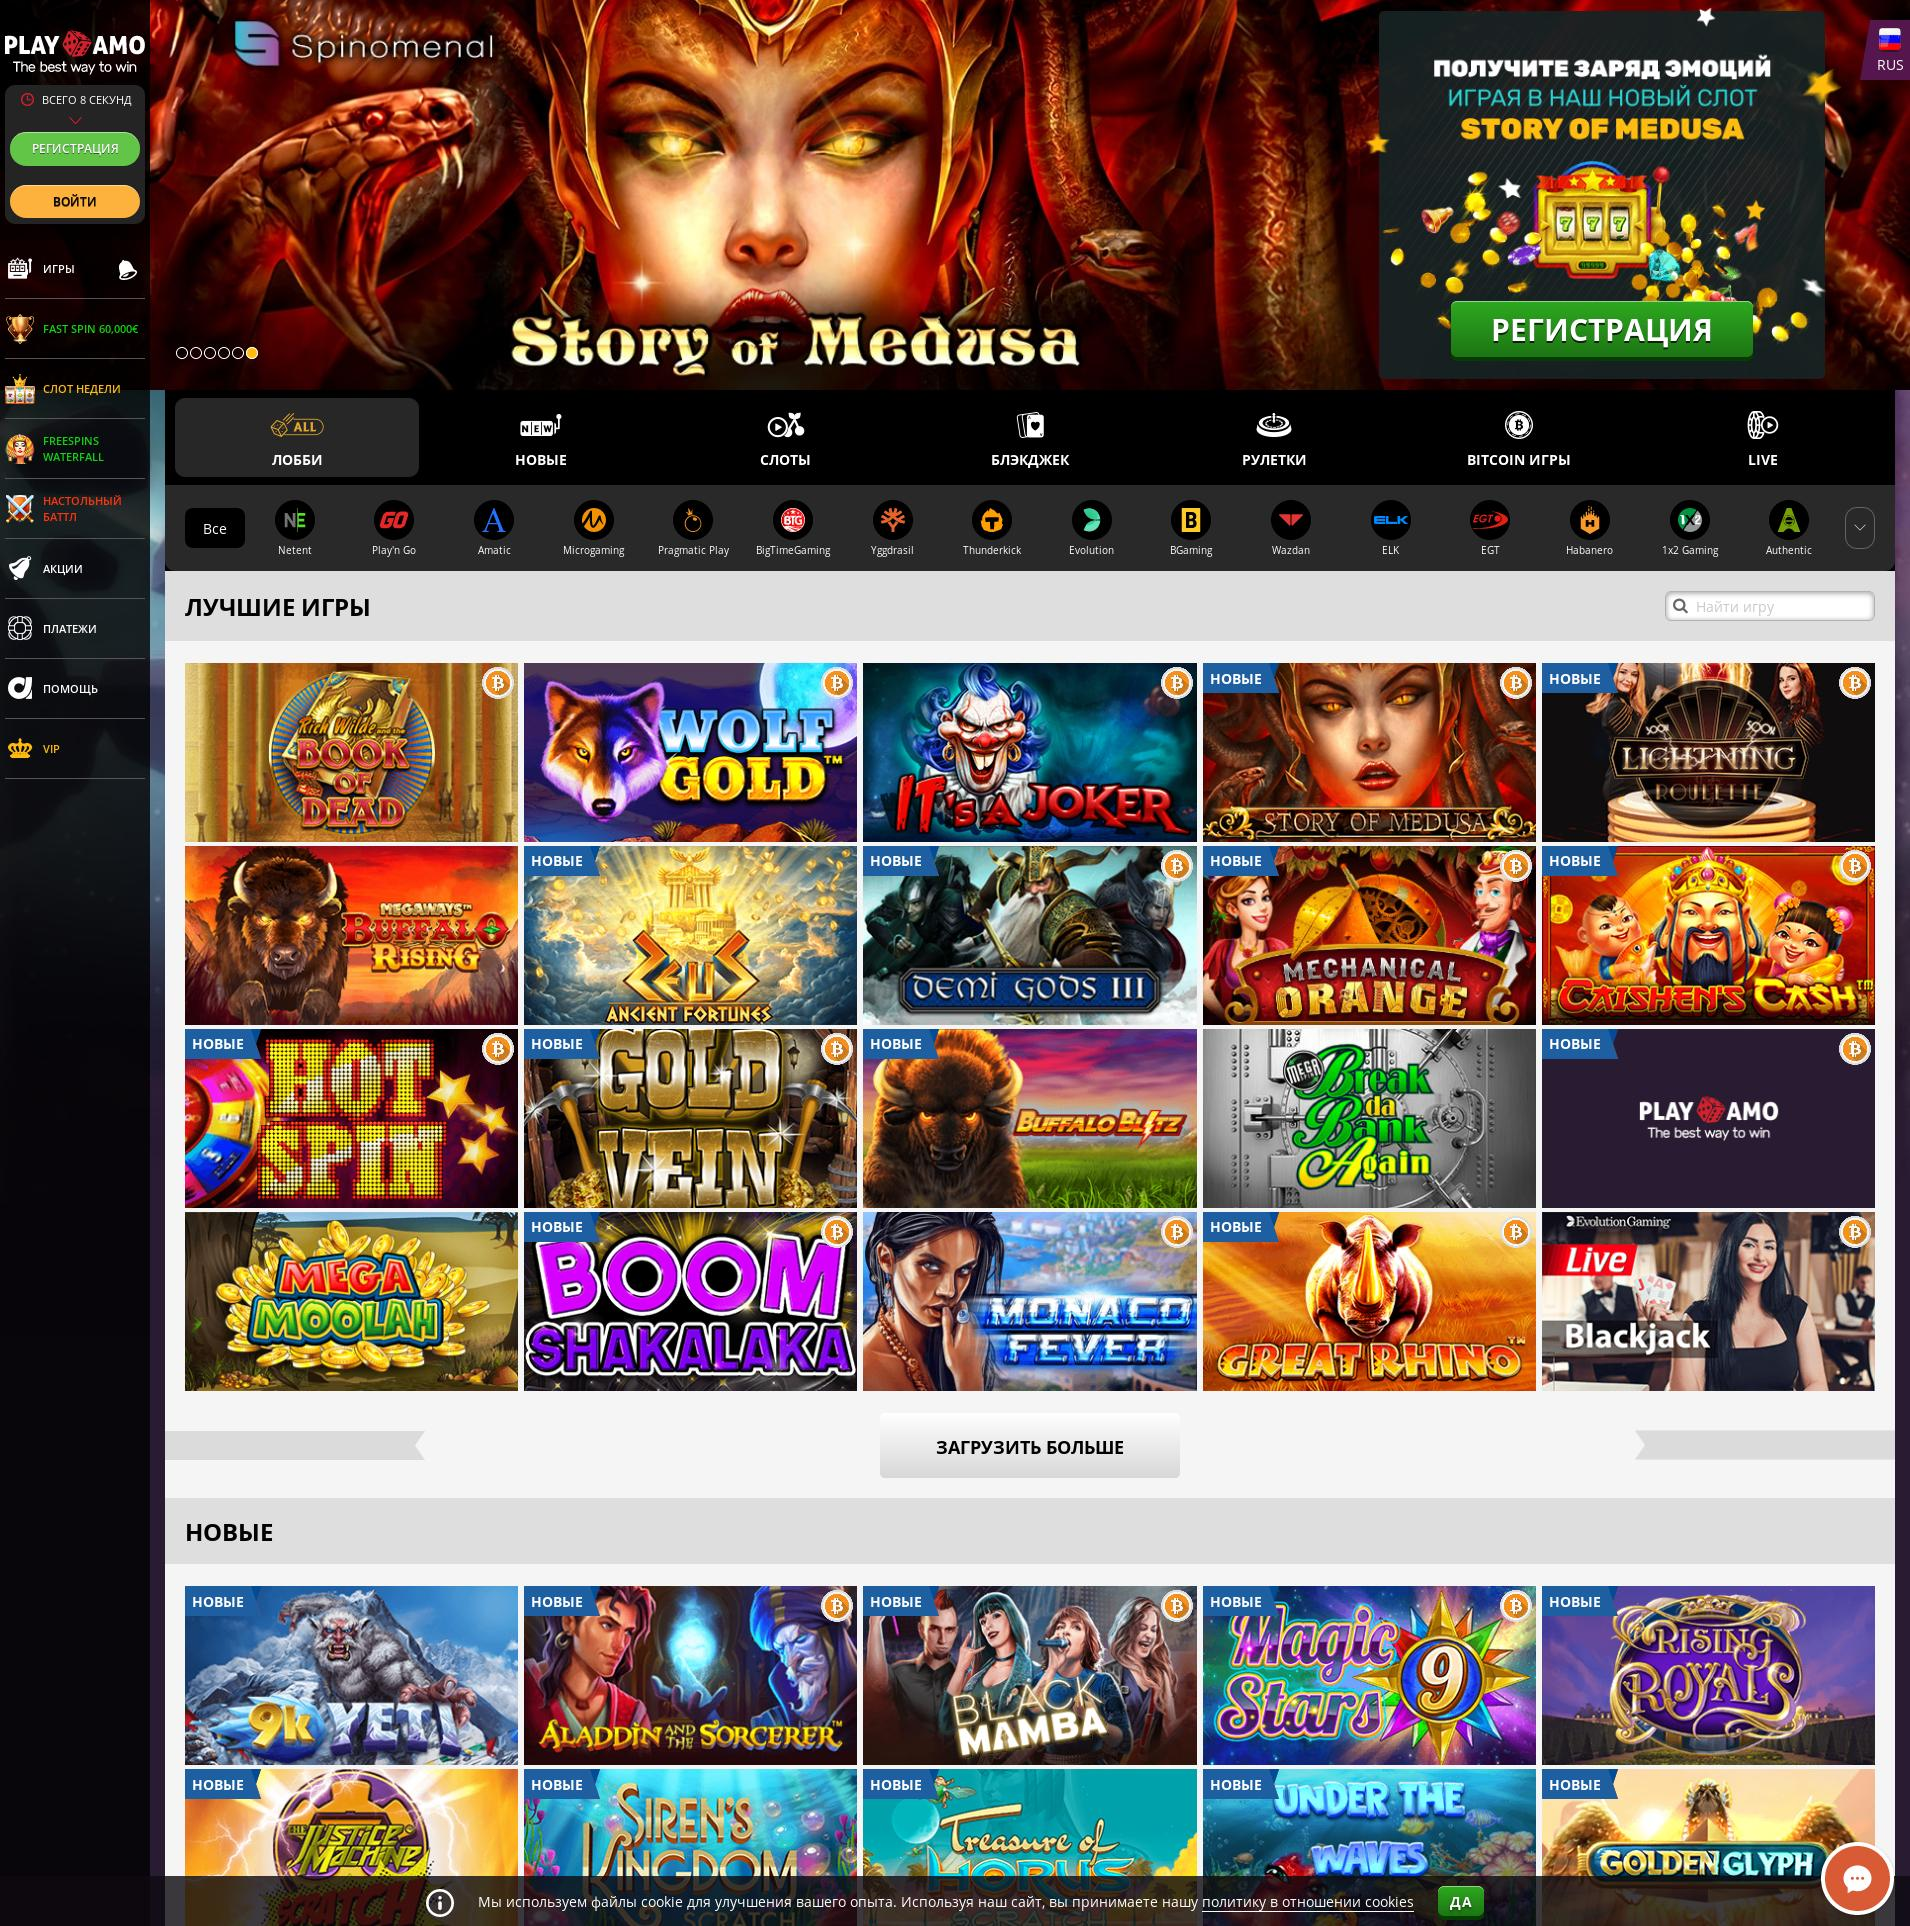 Casino screen Lobby 2019-11-15 for Russian Federation